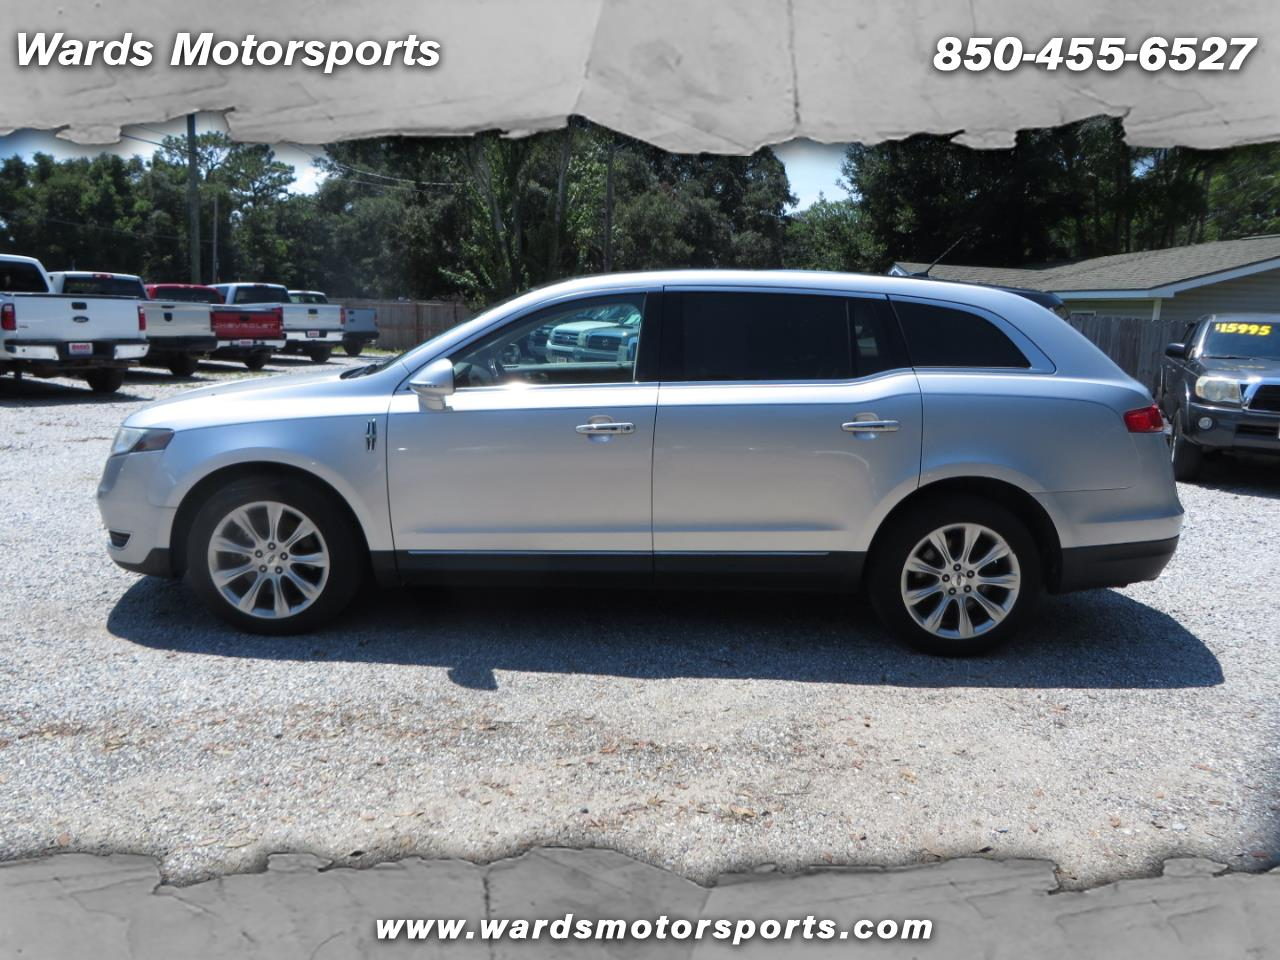 2013 Lincoln MKT 4dr Wgn 3.7L FWD